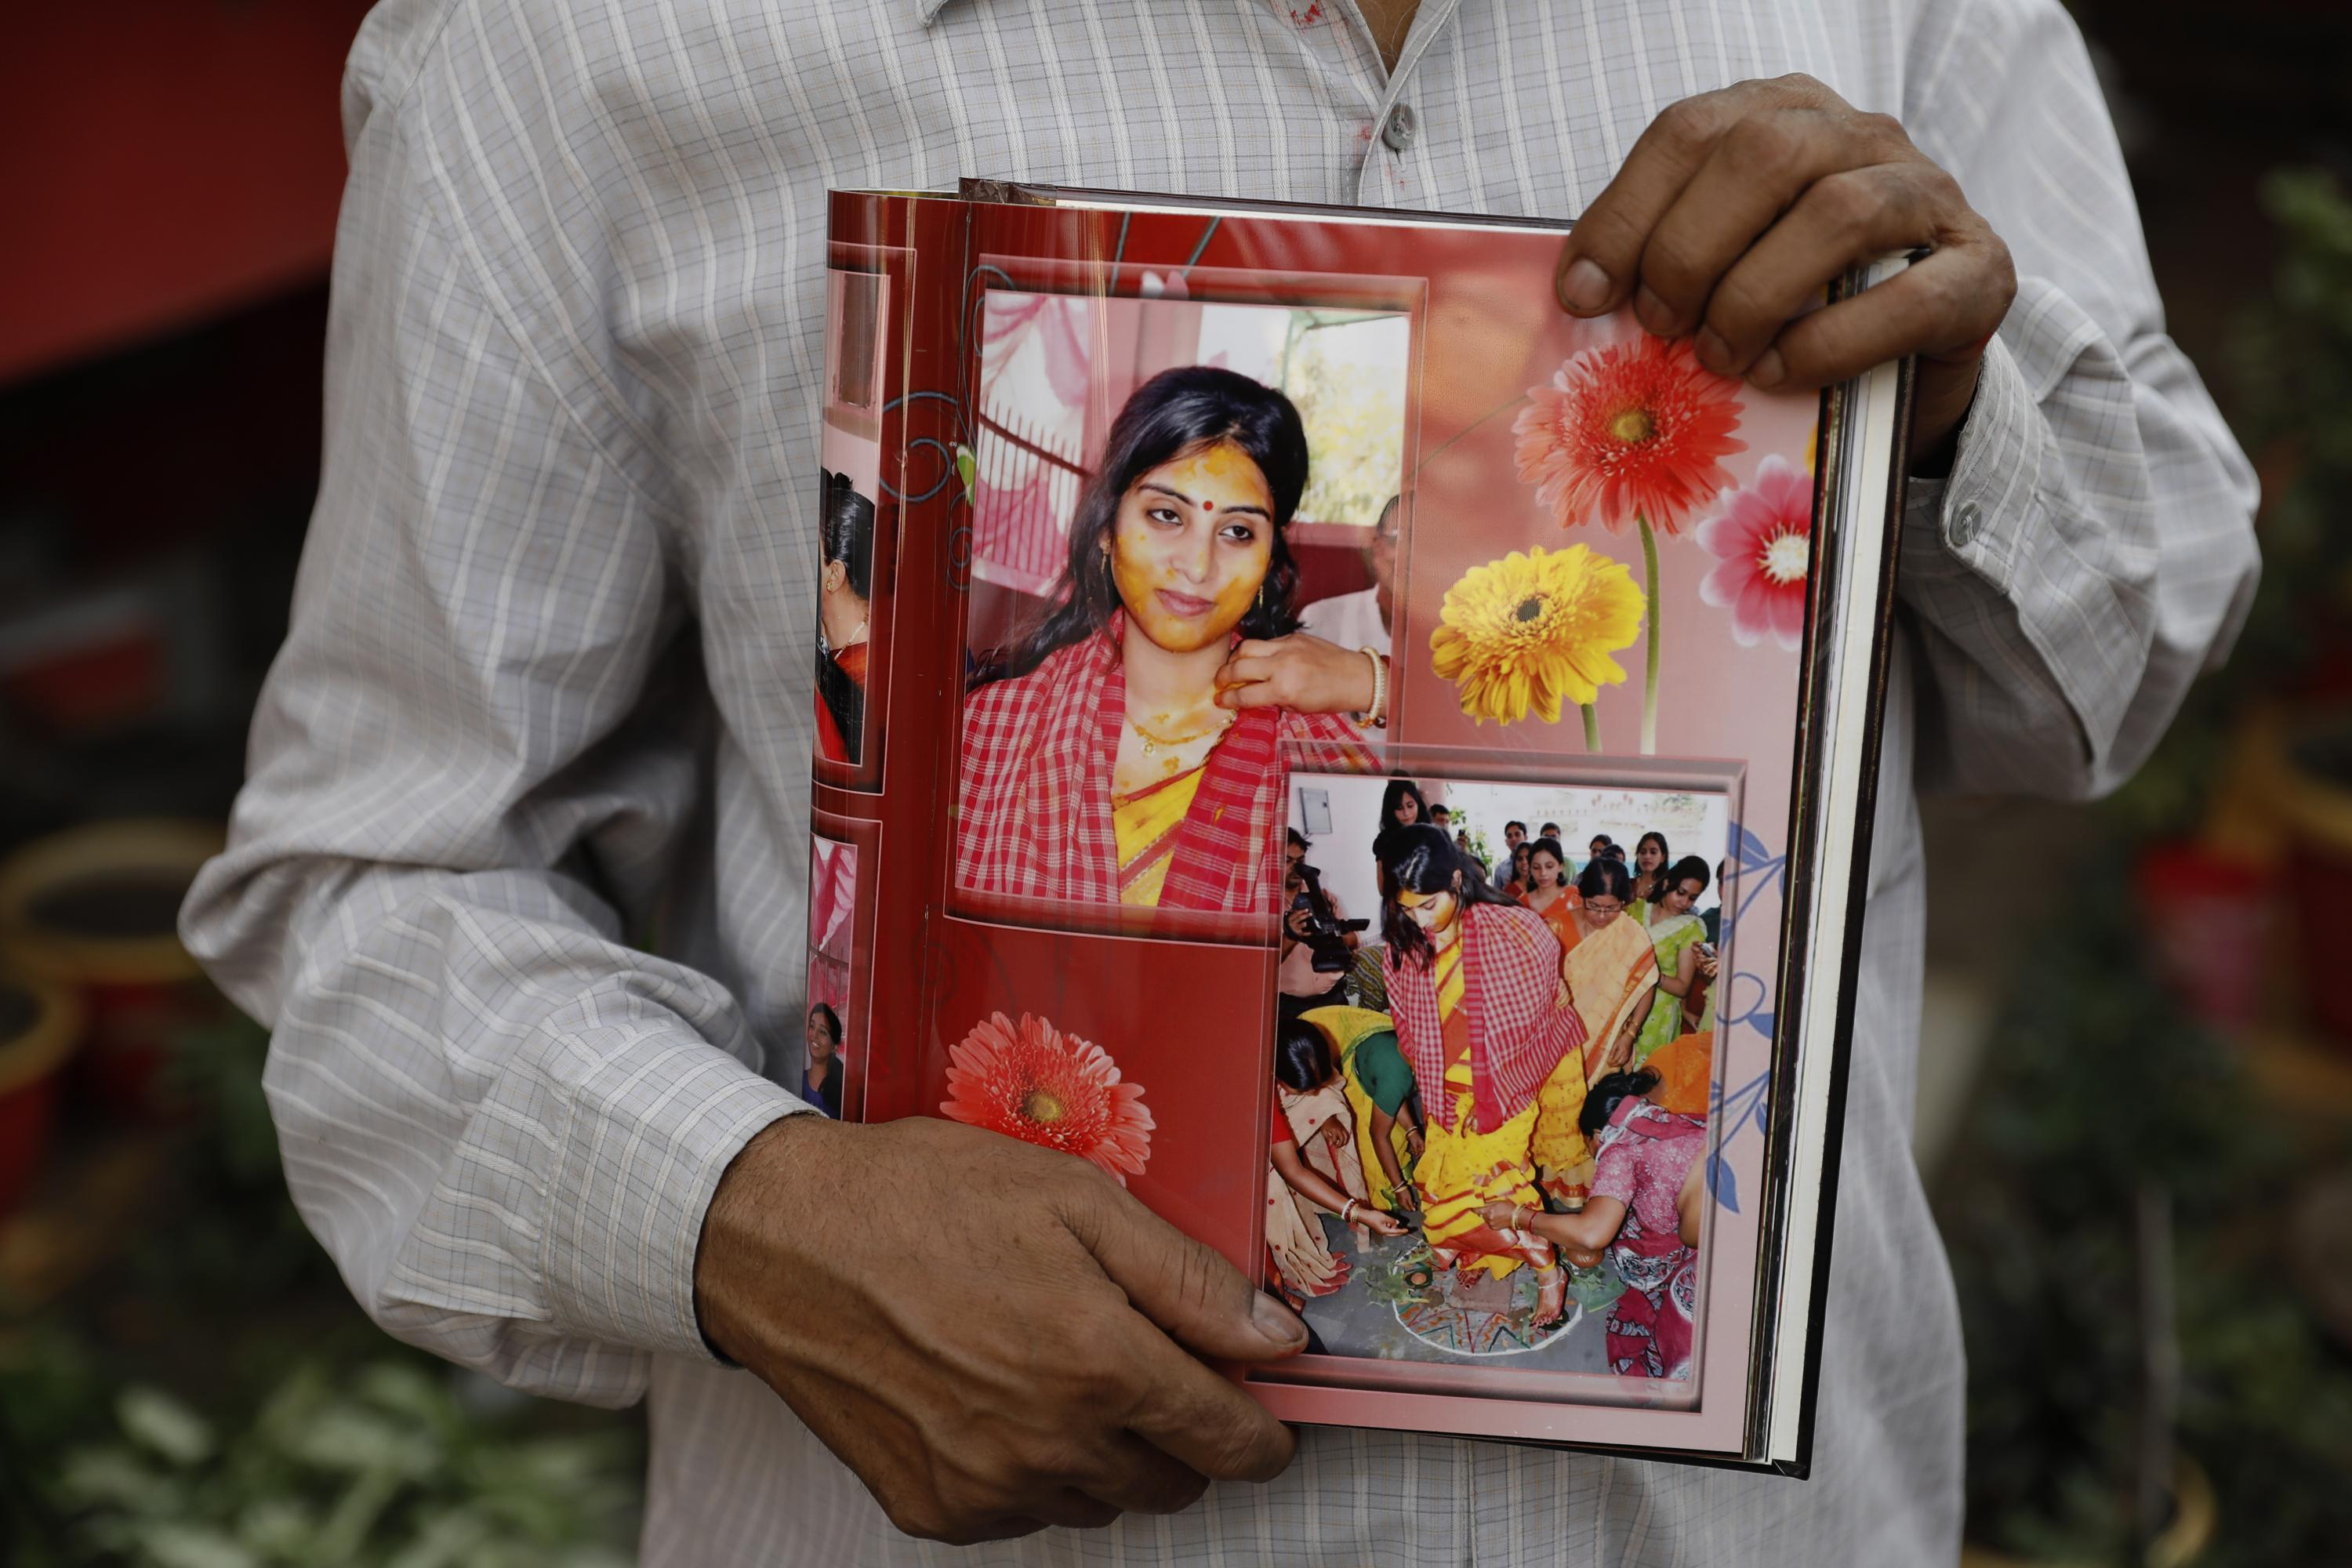 As India's surge wanes, families deal with the devastation